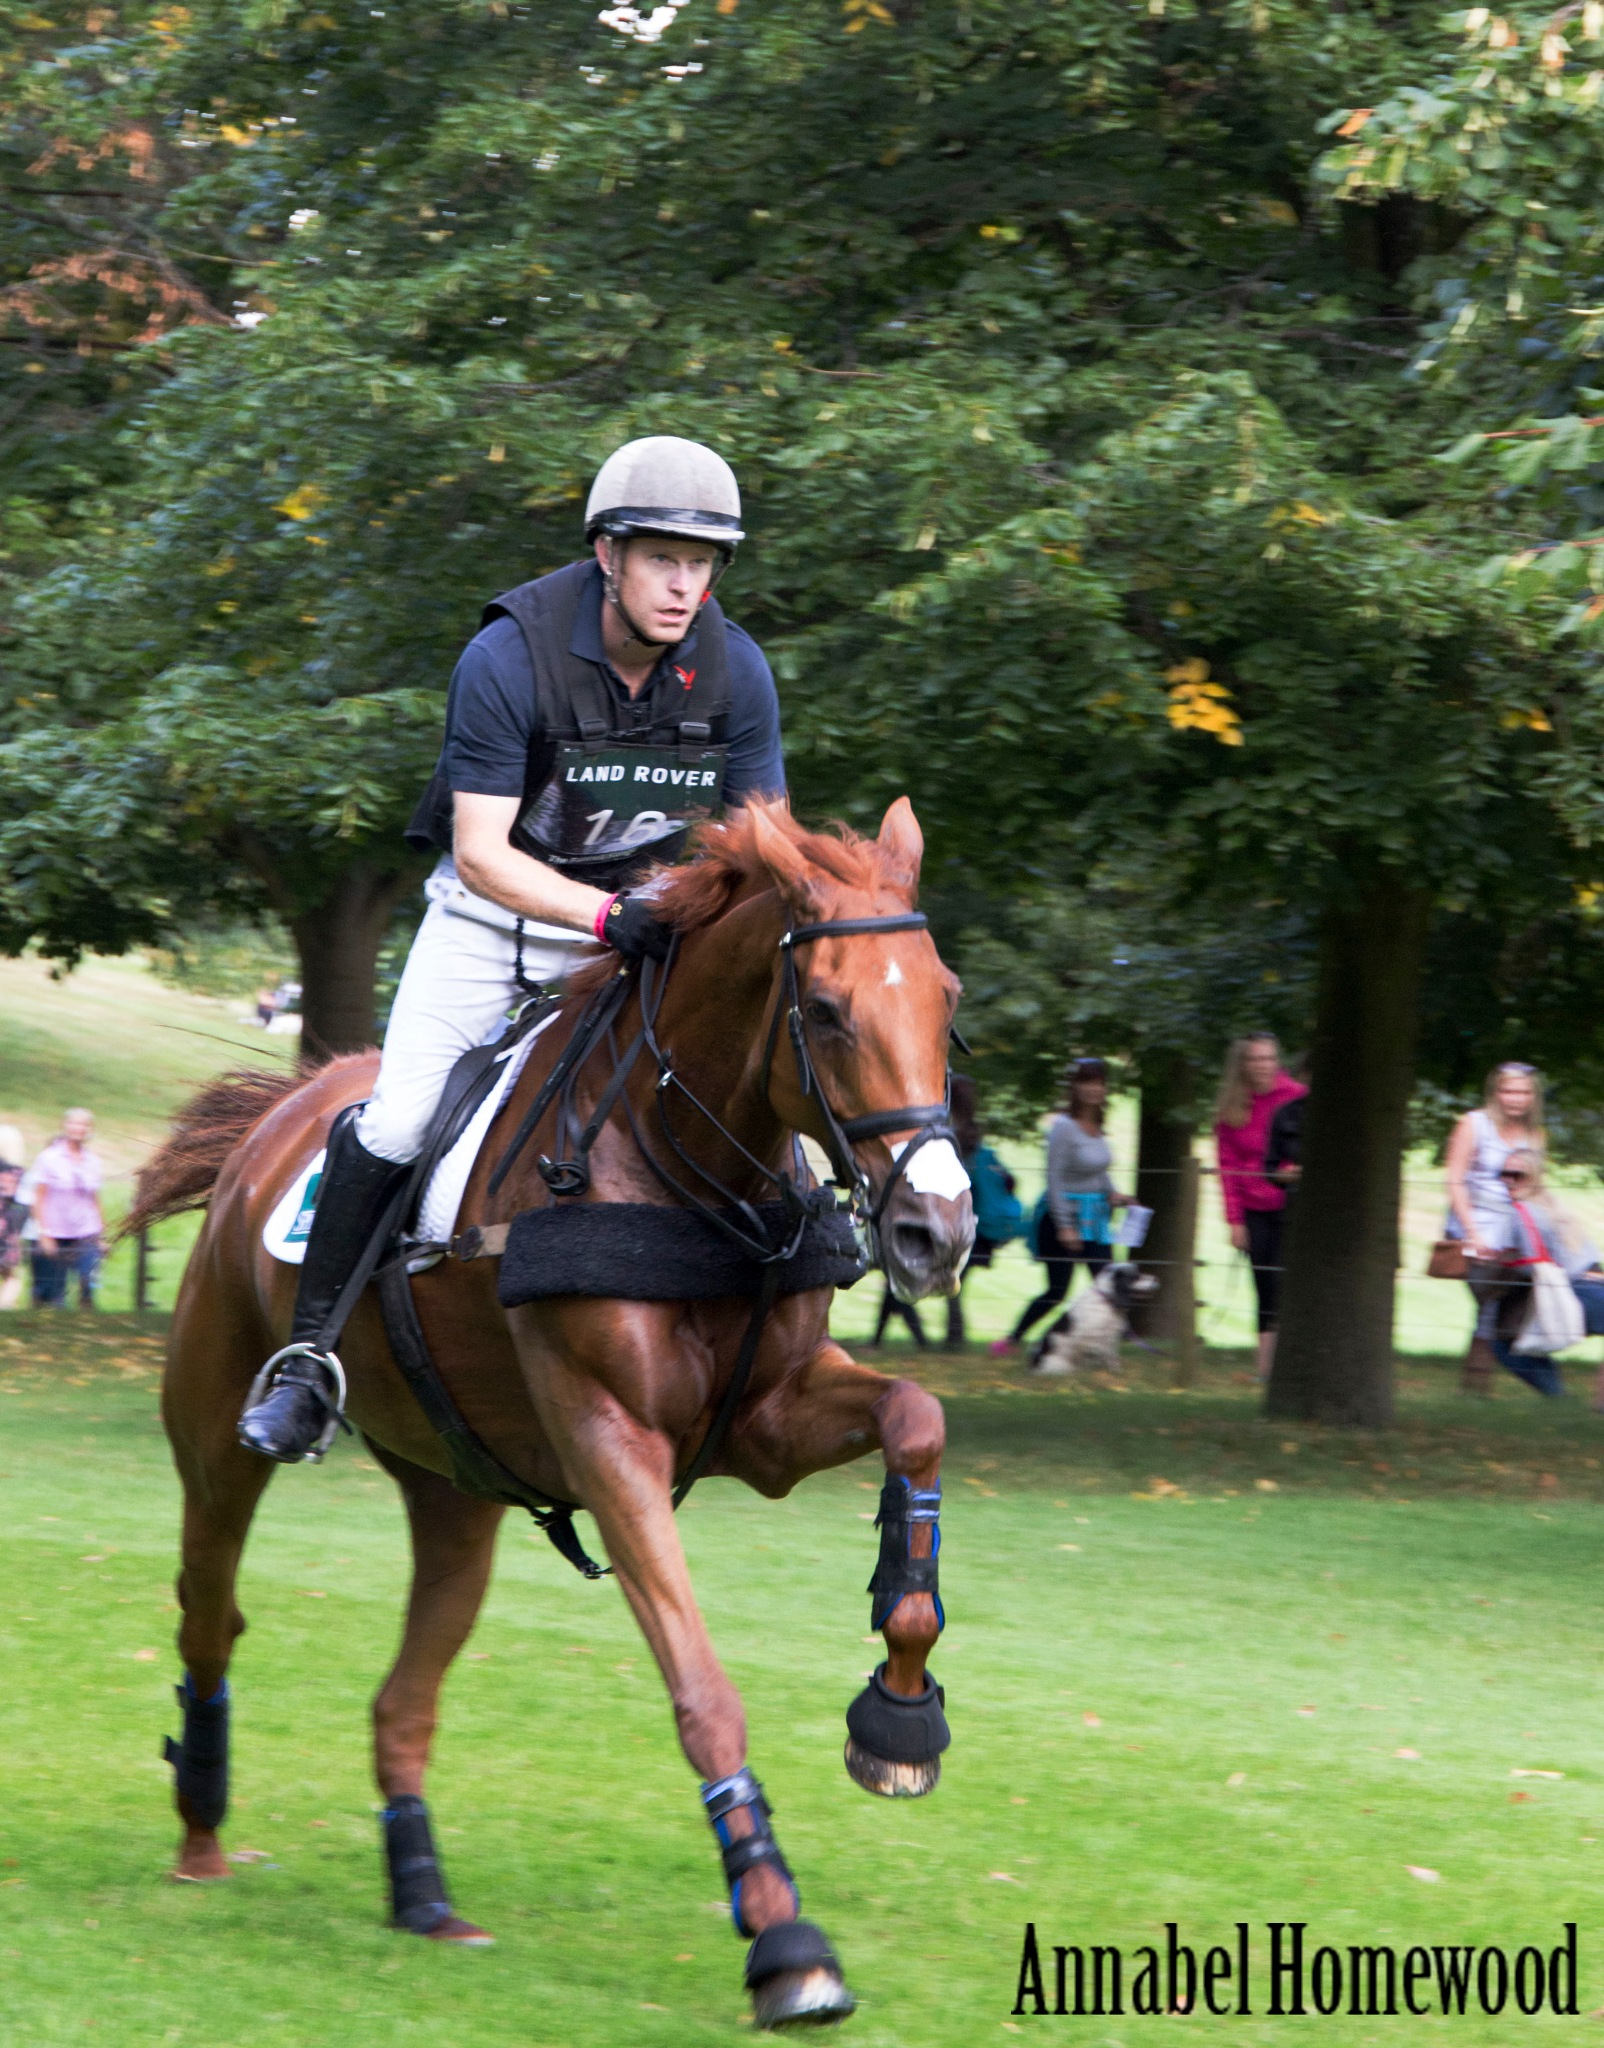 Burghley Horse Trials by Annabel Homewood